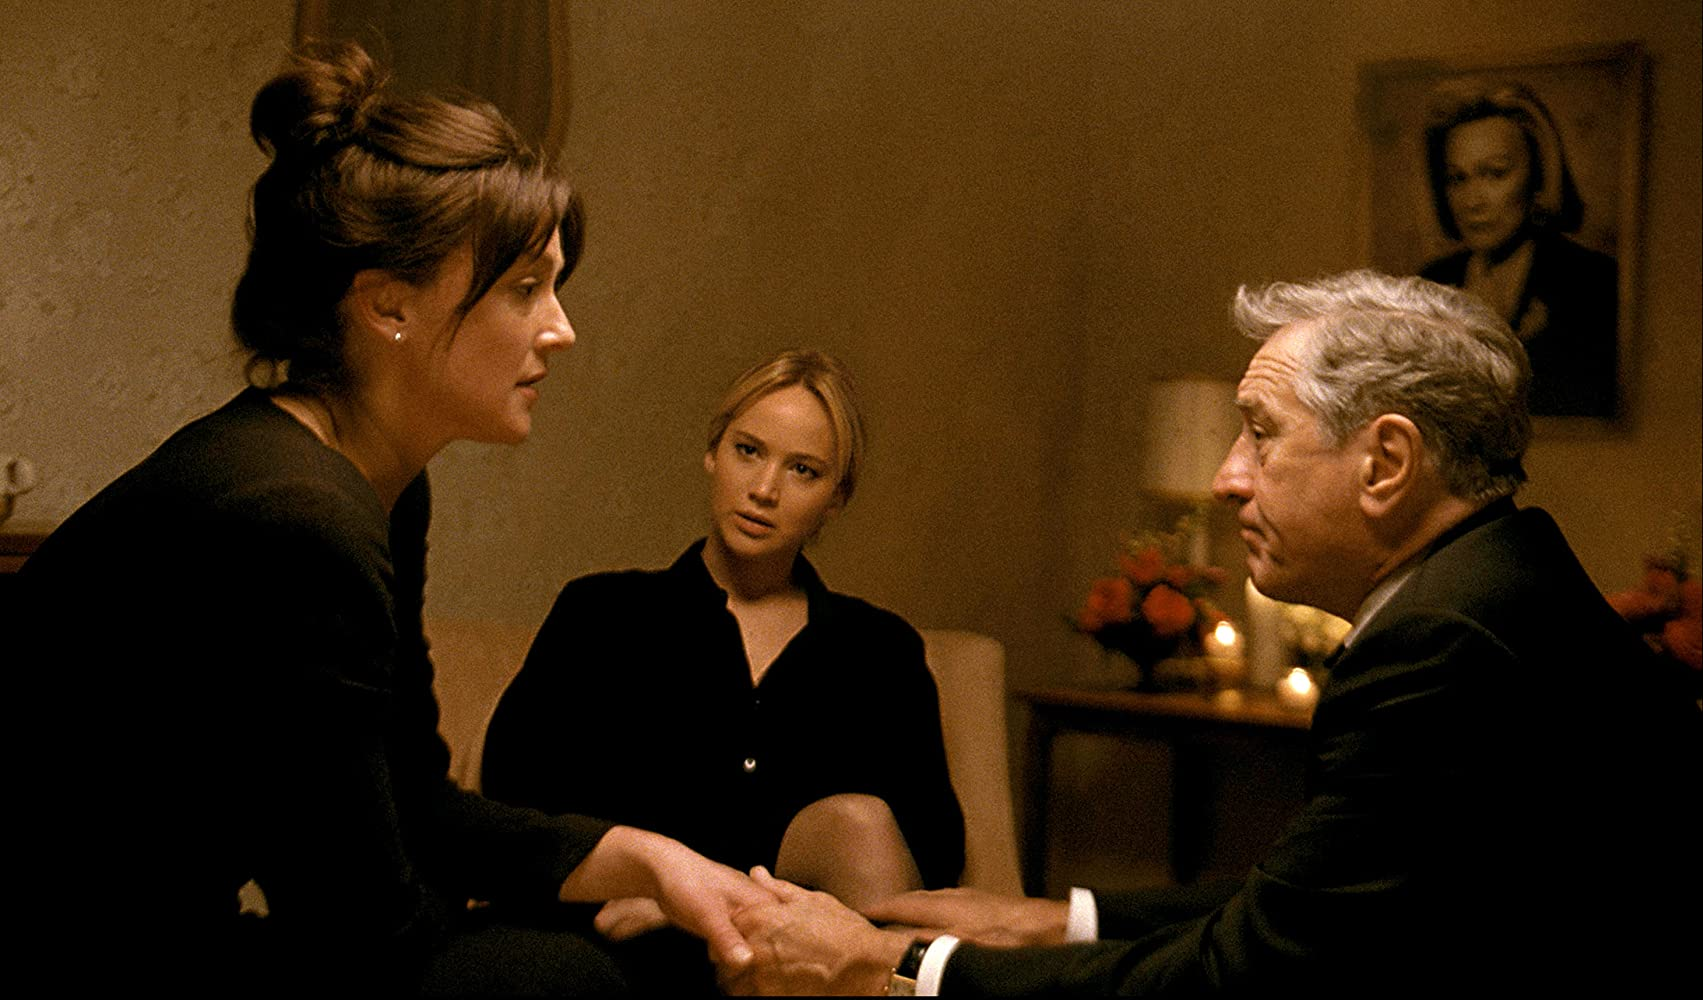 Robert De Niro, Elisabeth Röhm, and Jennifer Lawrence in Joy (2015)